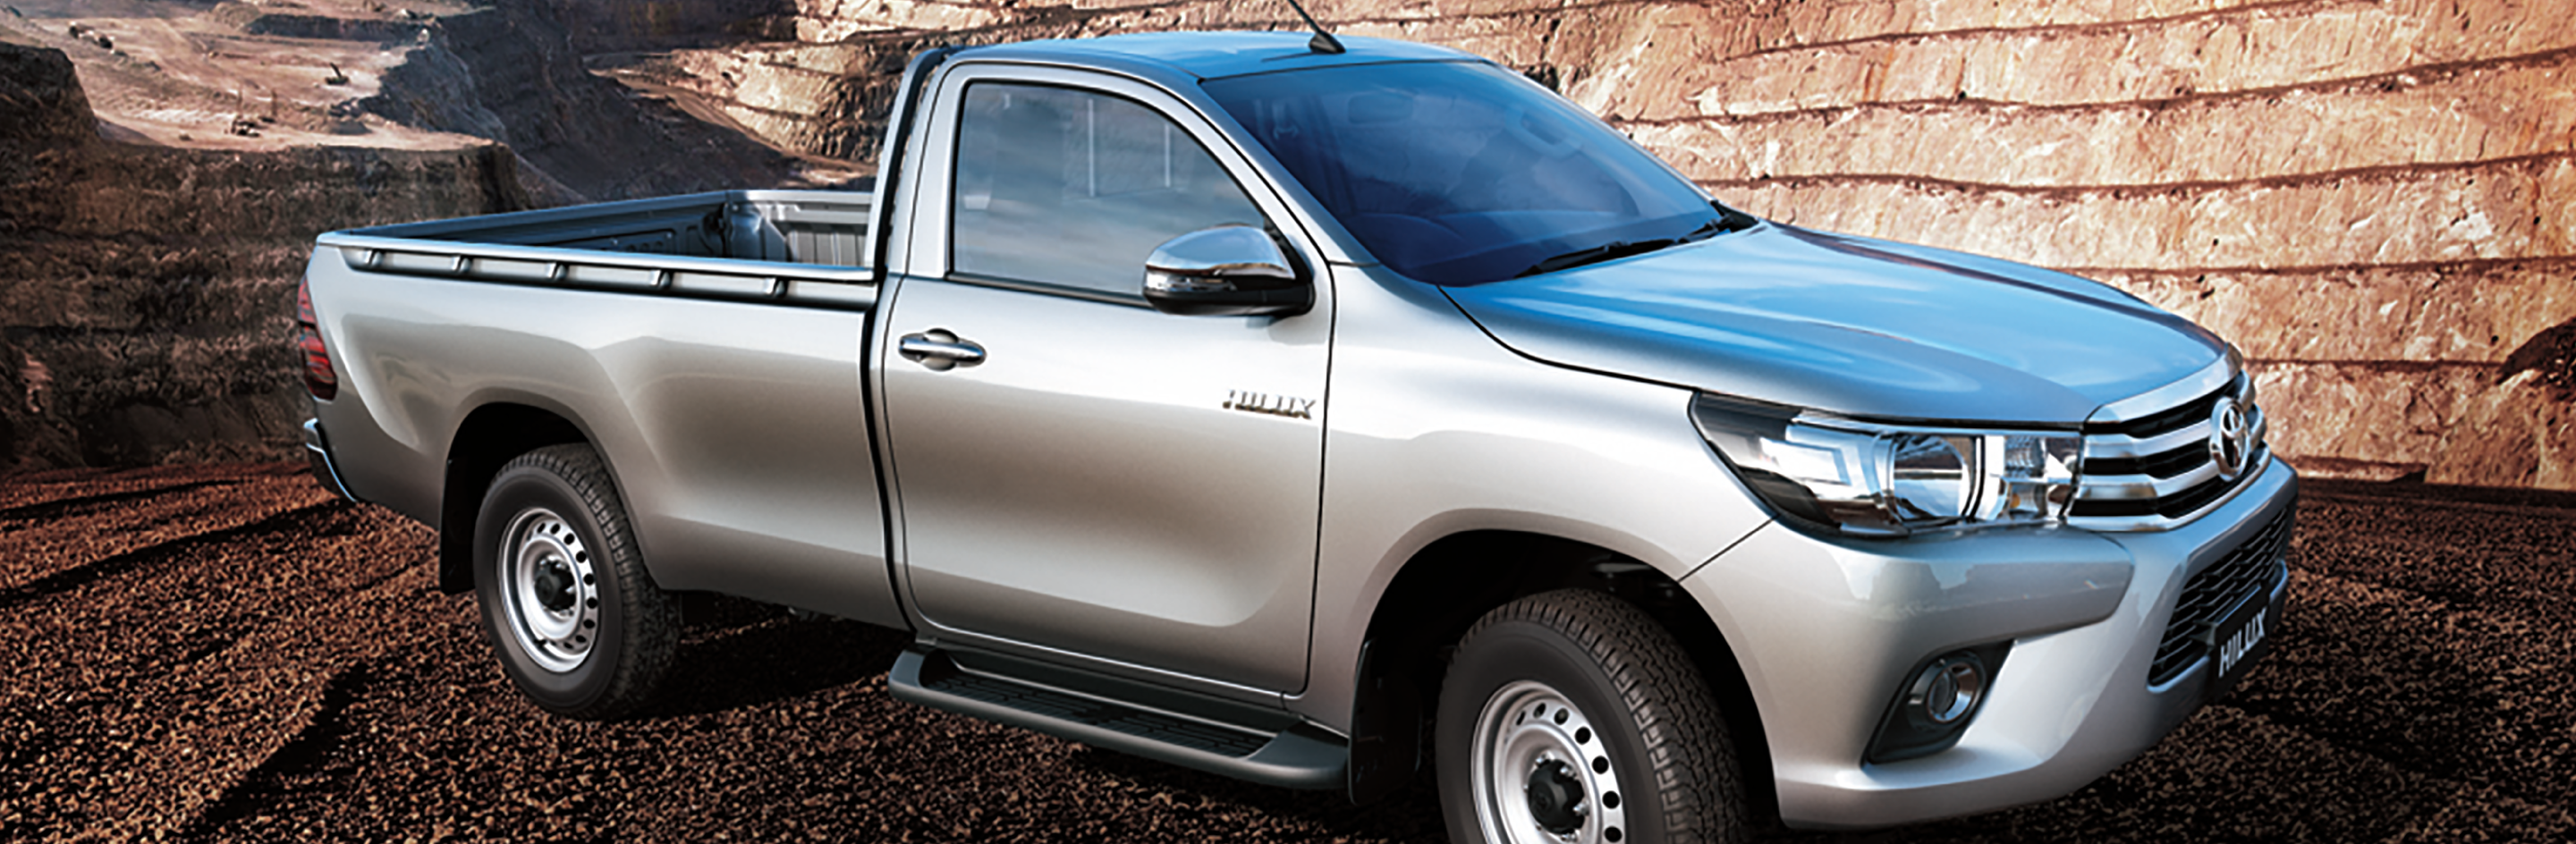 Banner Toyota Hilux Low Bed 2020